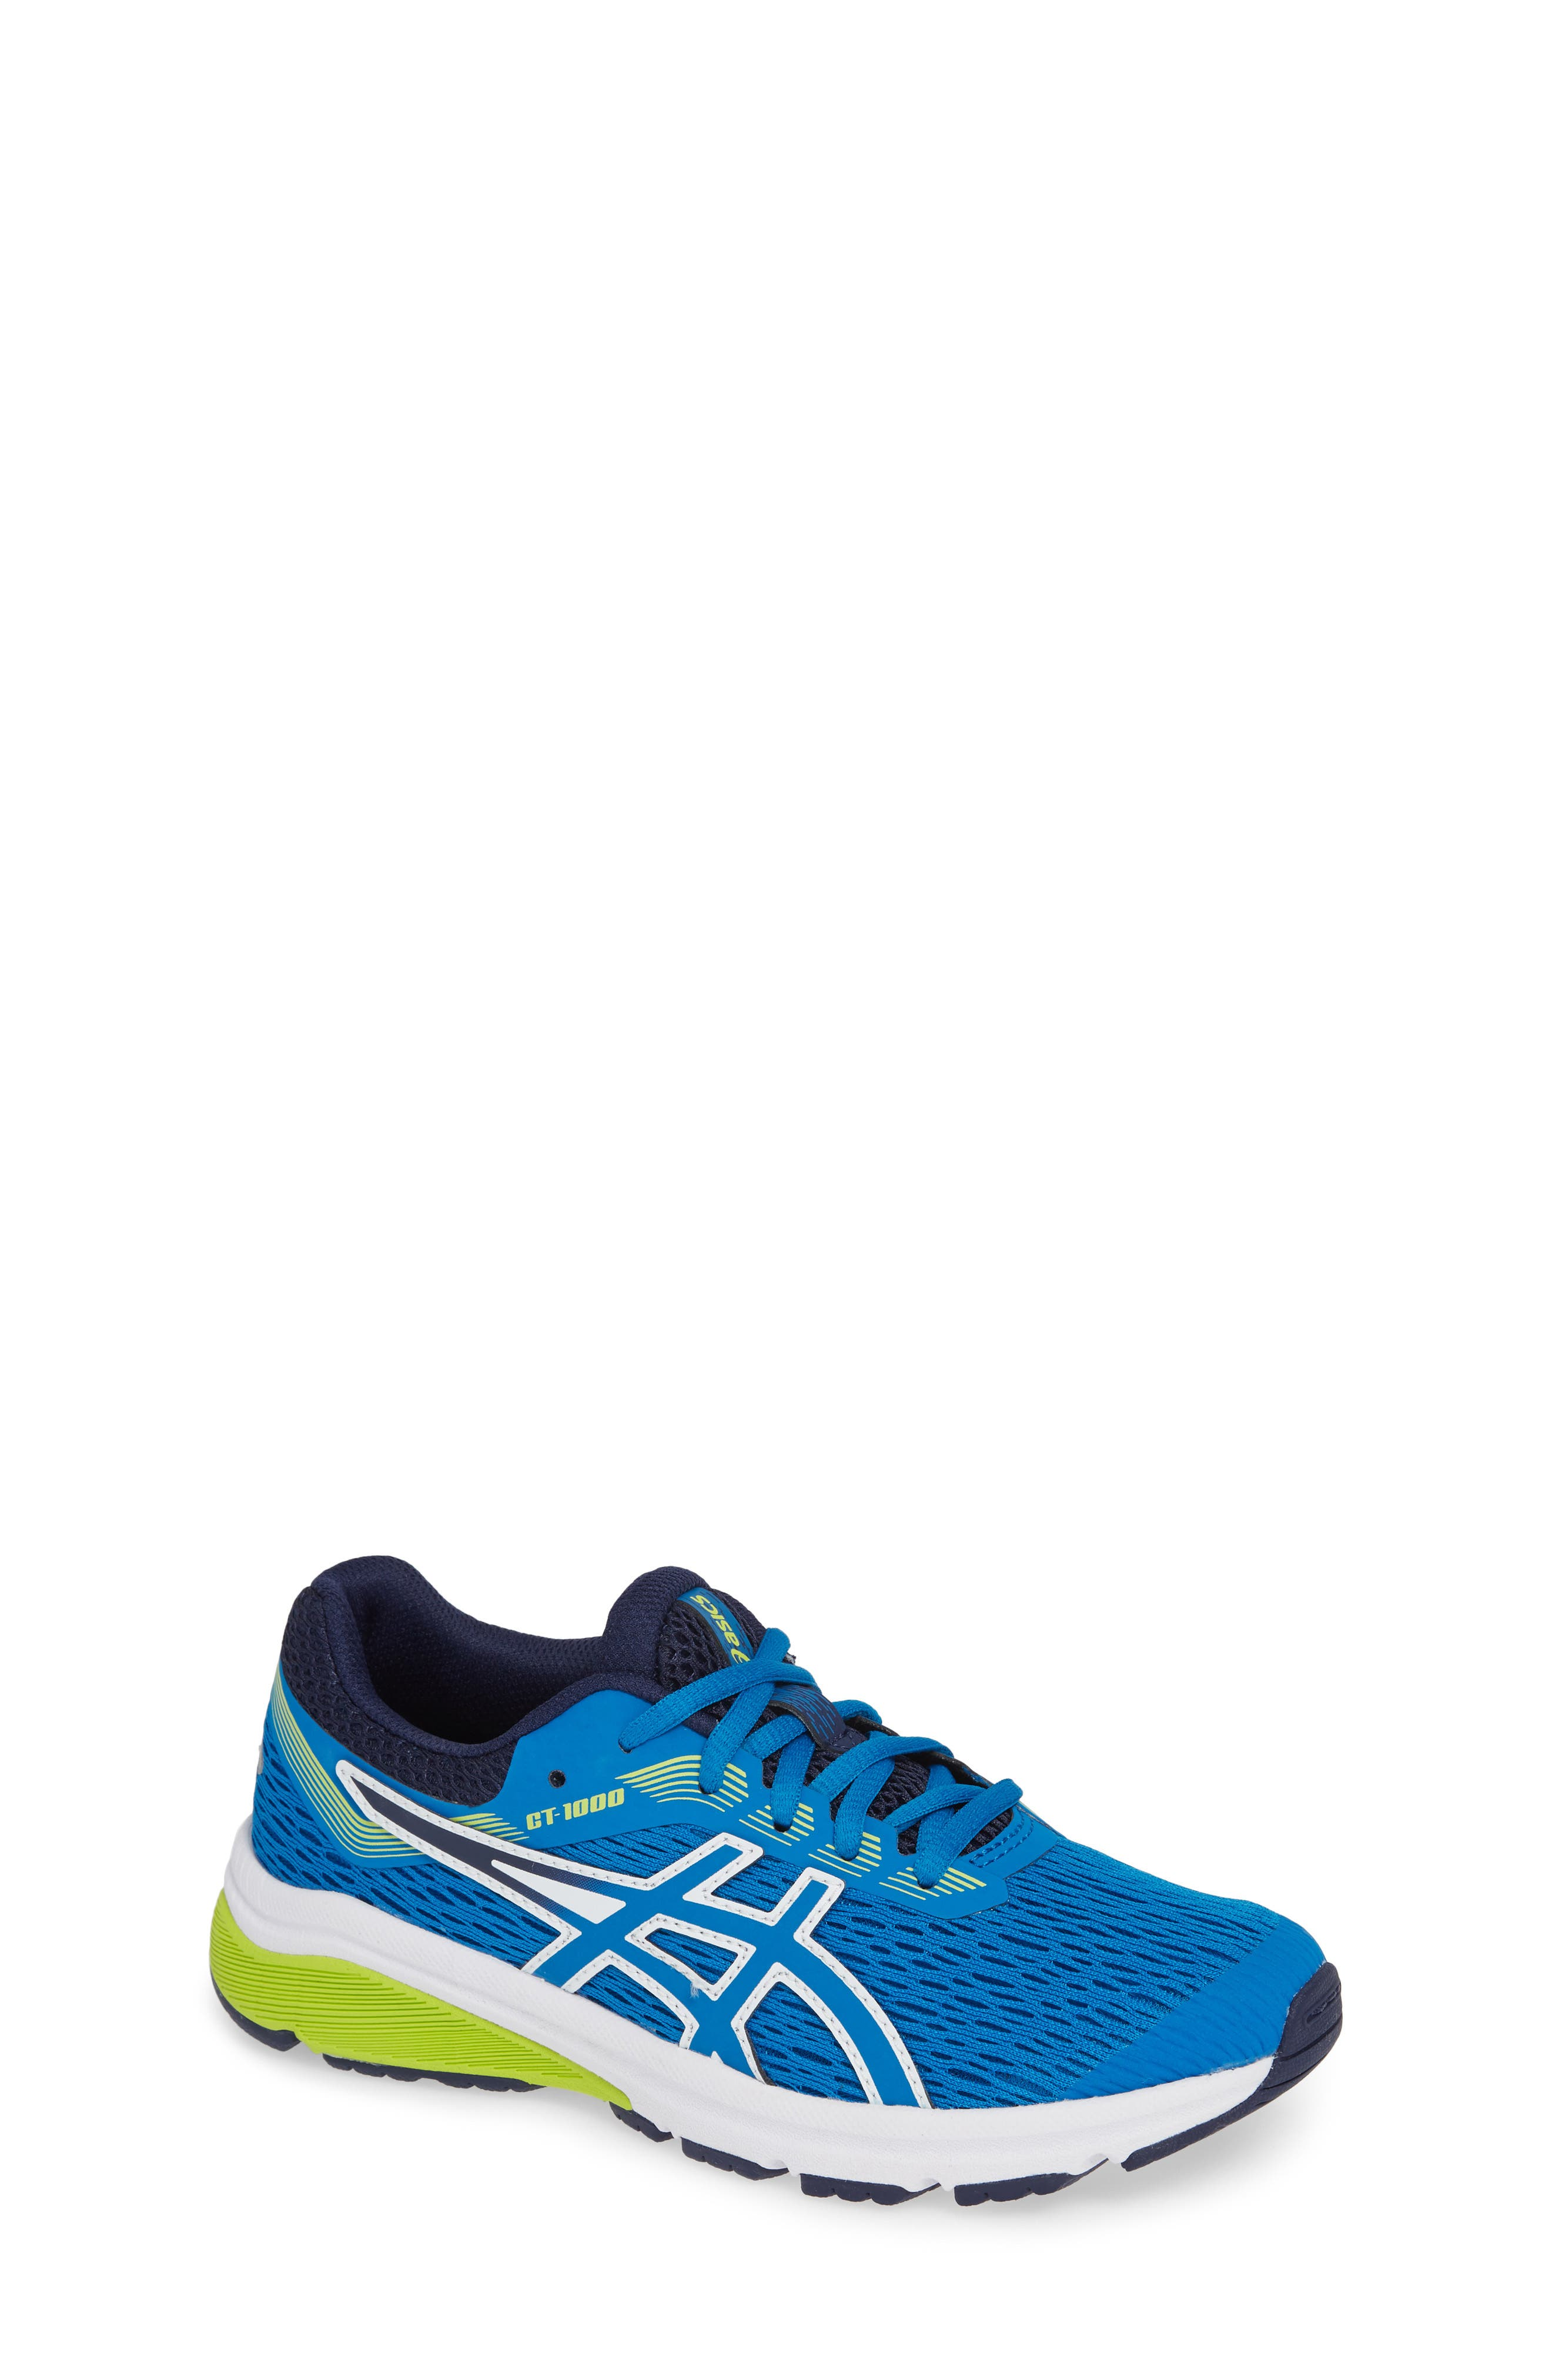 GT 1000 7 Running Shoe,                         Main,                         color, RACE BLUE/ NEON LIME